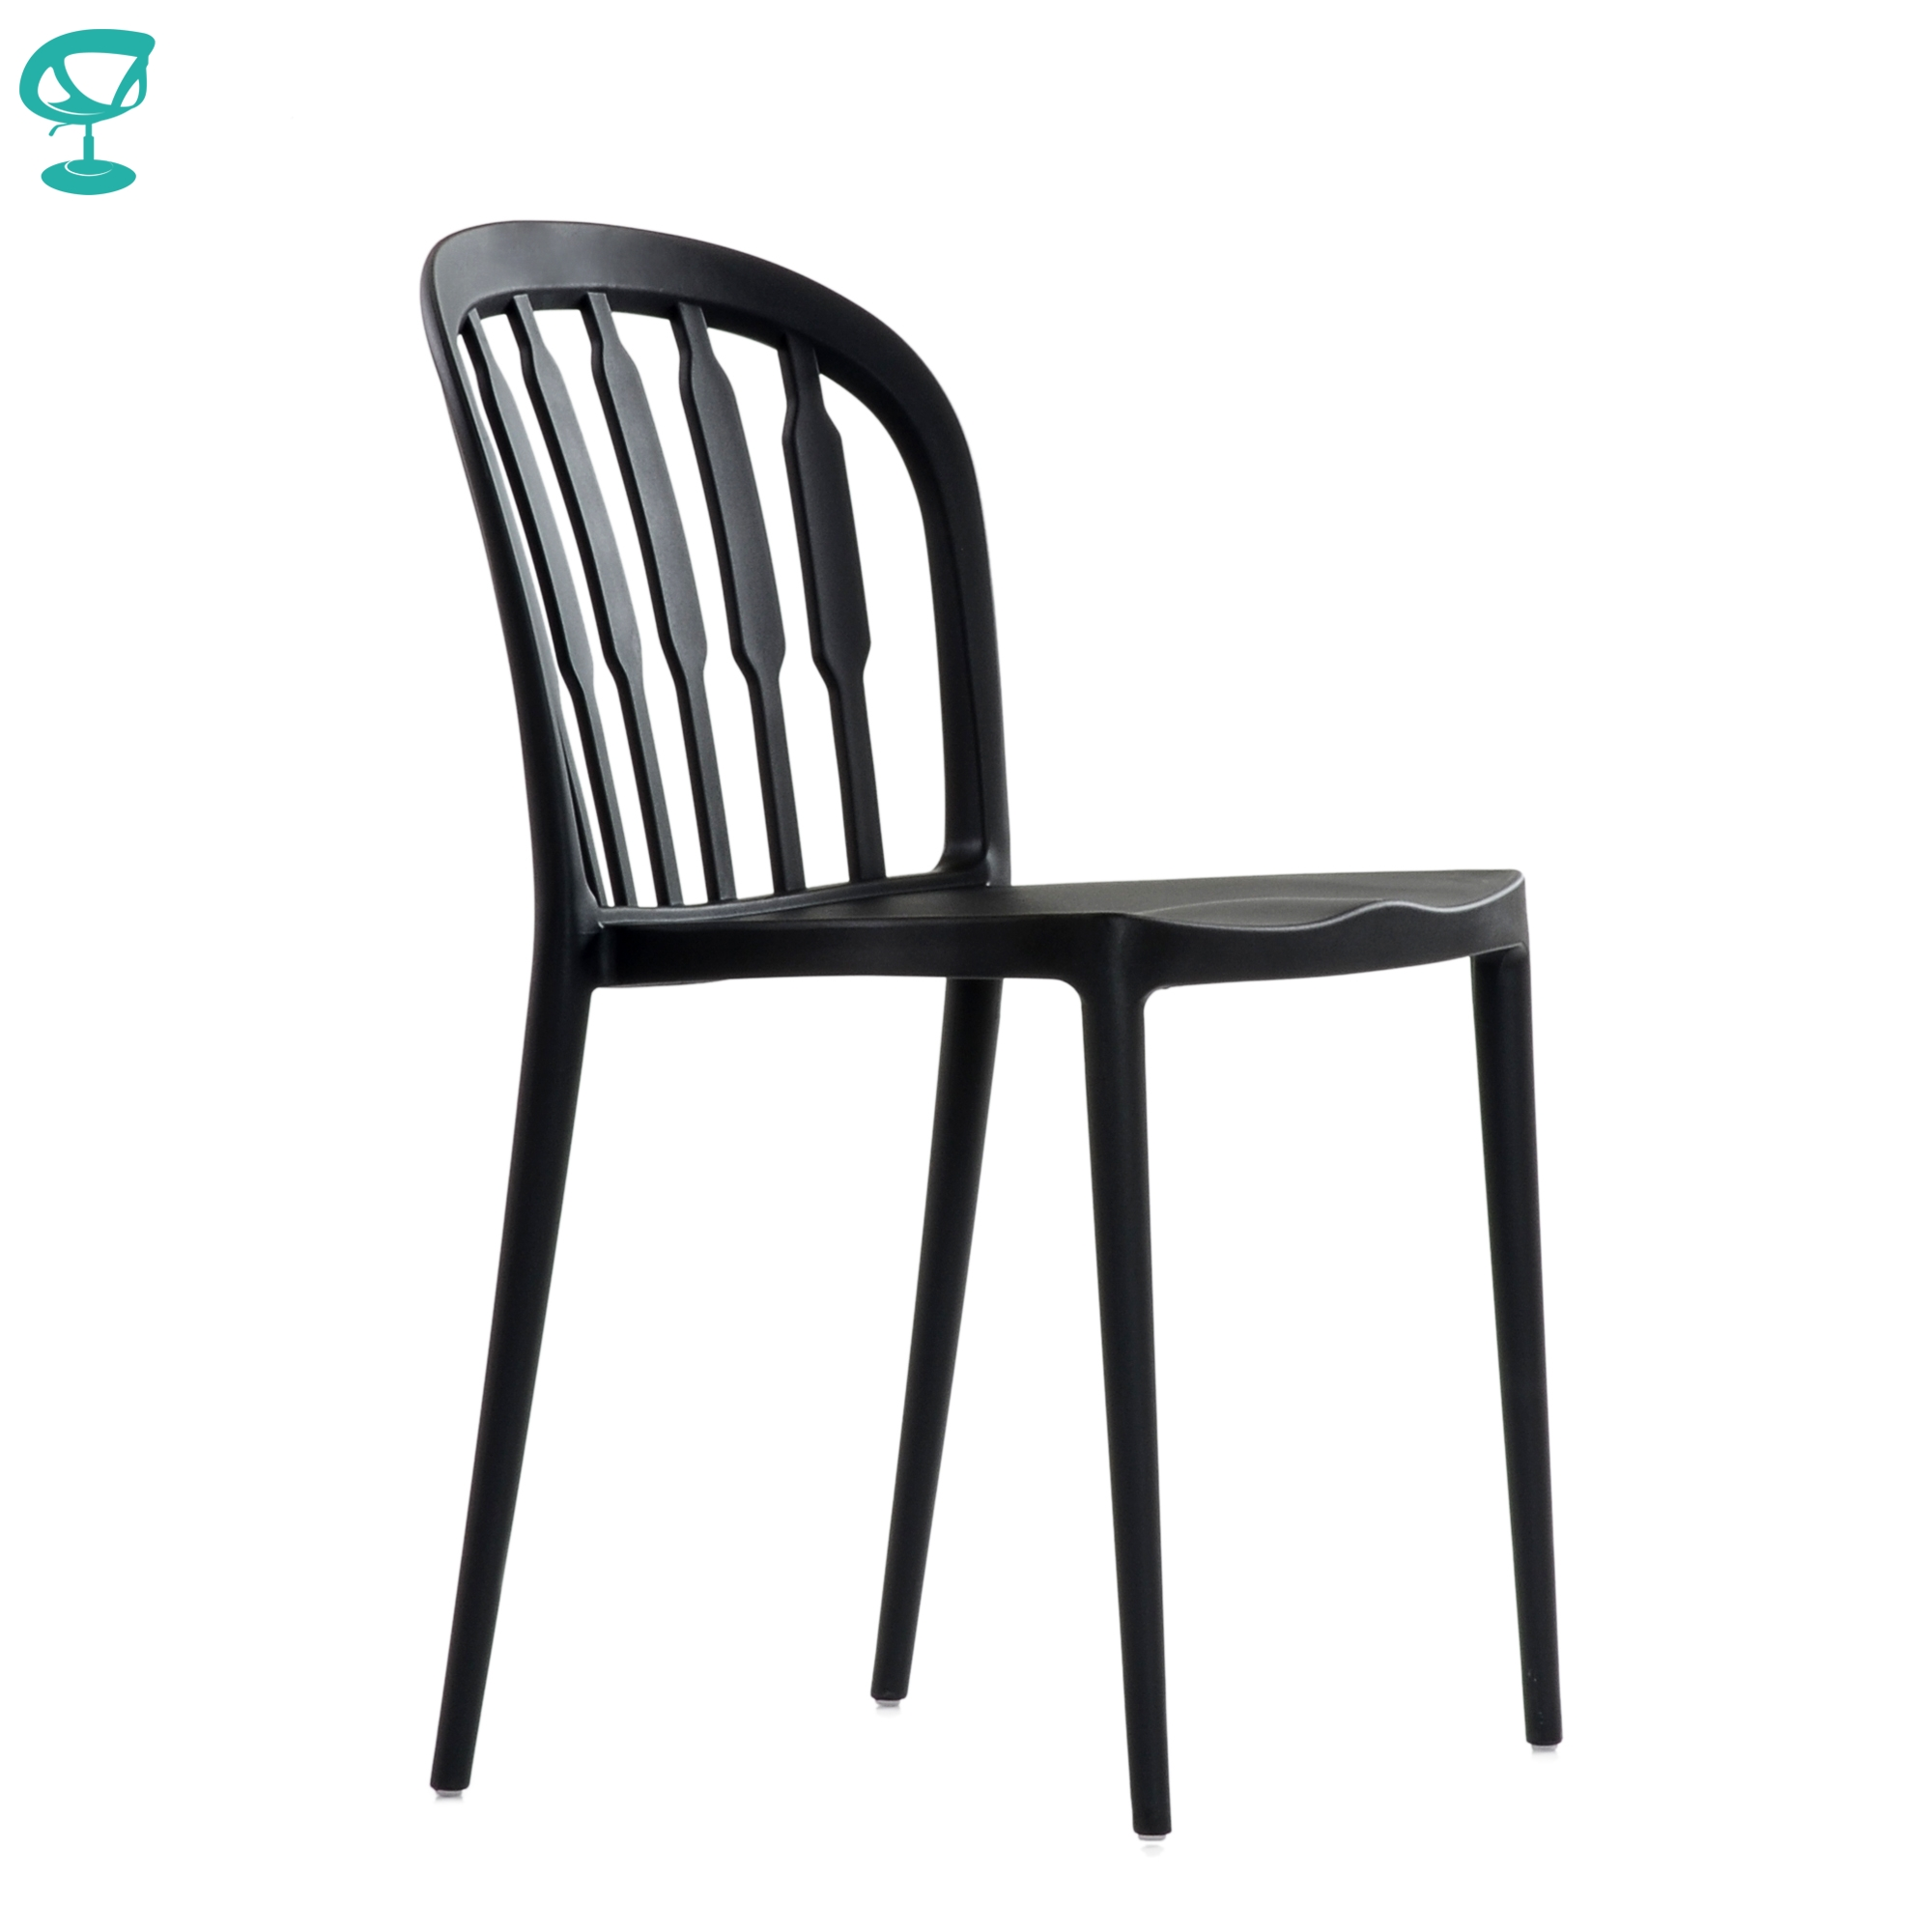 95718 Barneo N-216 Plastic Kitchen Interior Stool Chair For A Street Cafe Chair Kitchen Furniture Black Free Shipping In Russia